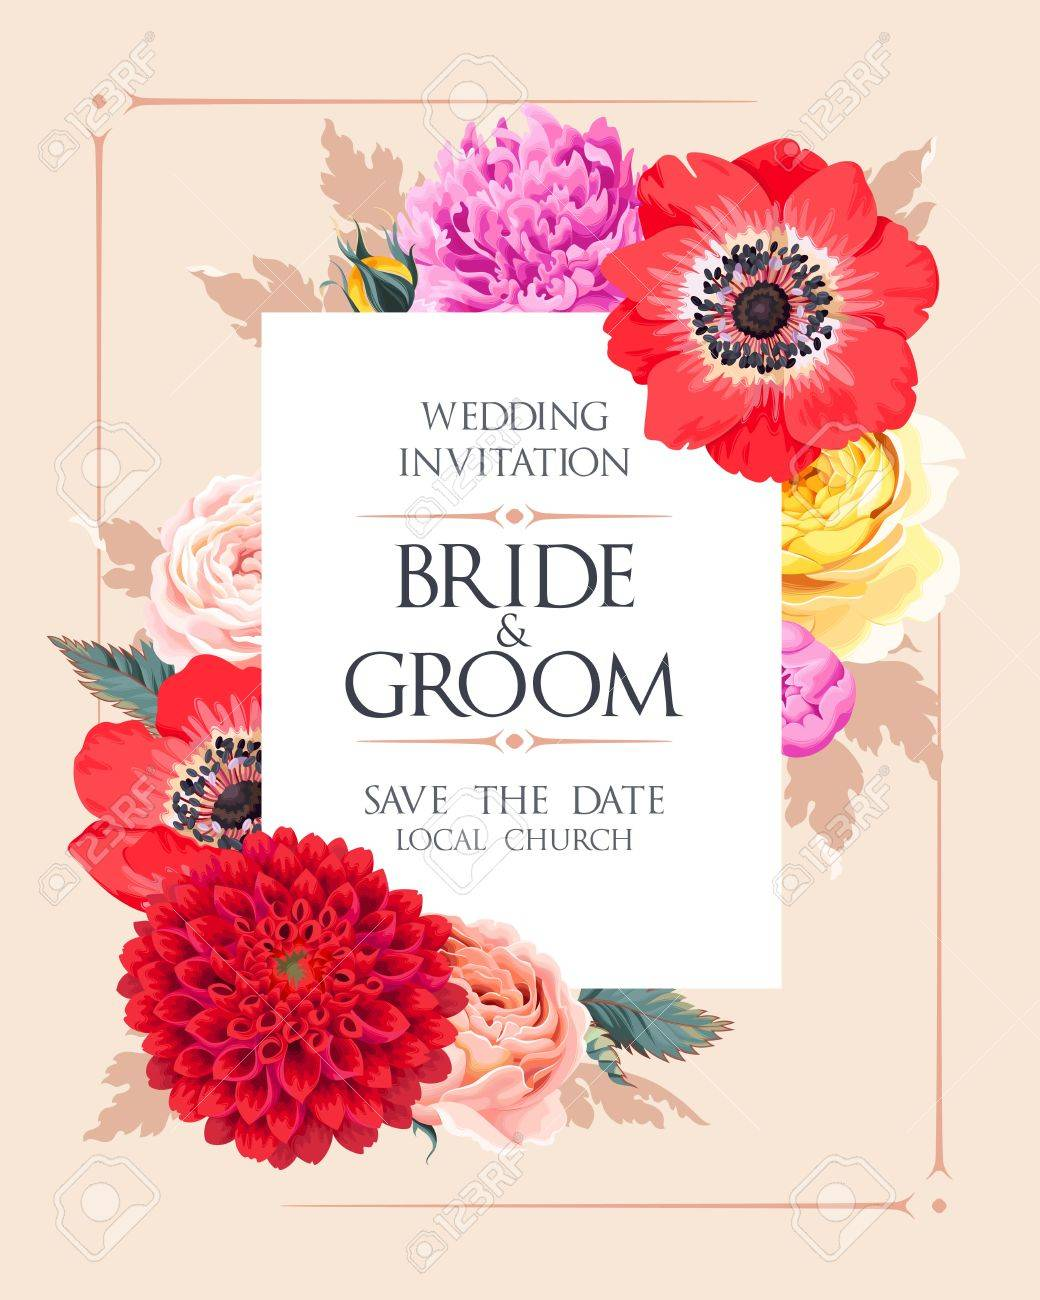 Wedding Invitation With Flowers Royalty Free Cliparts, Vectors, And ...